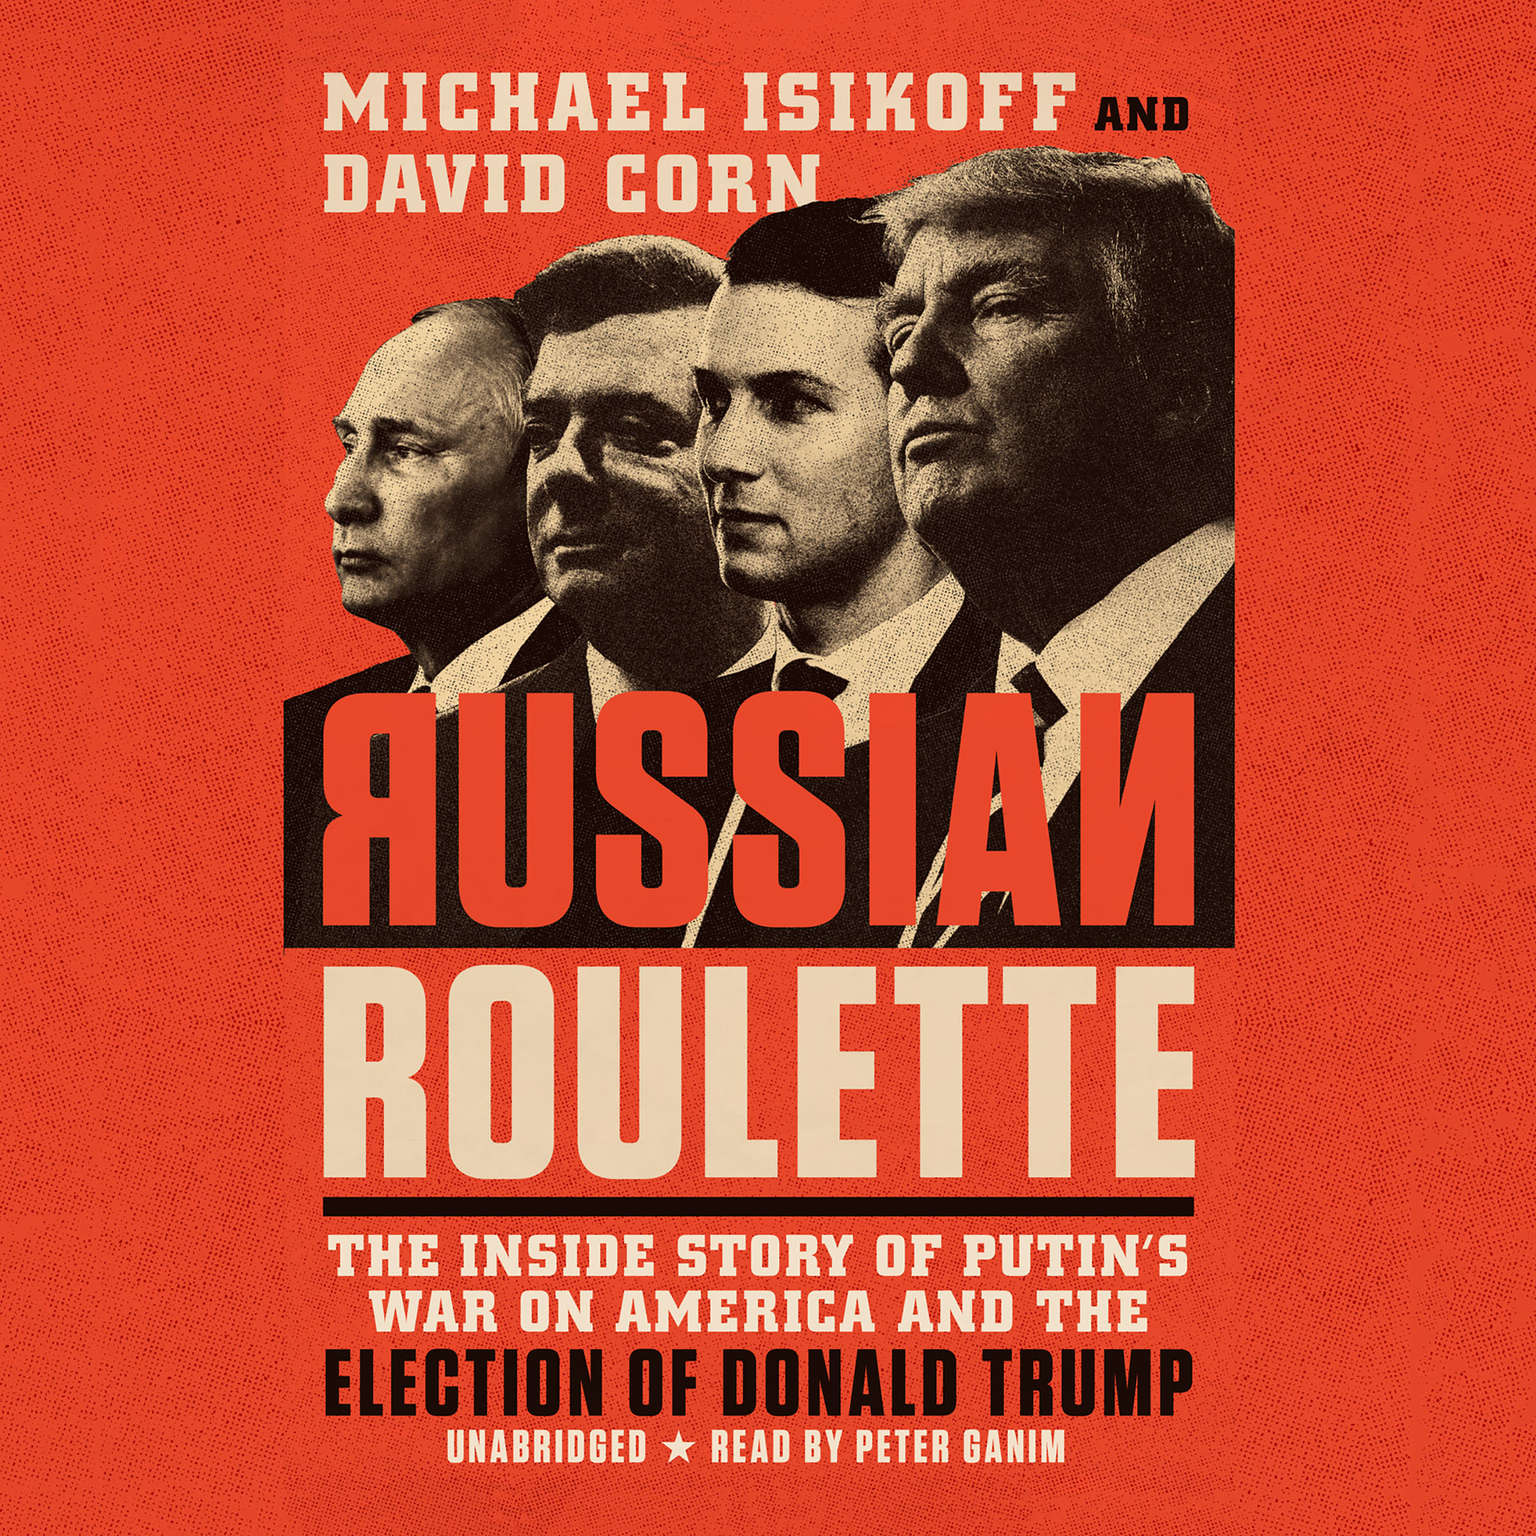 Russian Roulette: The Inside Story of Putins War on America and the Election of Donald Trump Audiobook, by David Corn